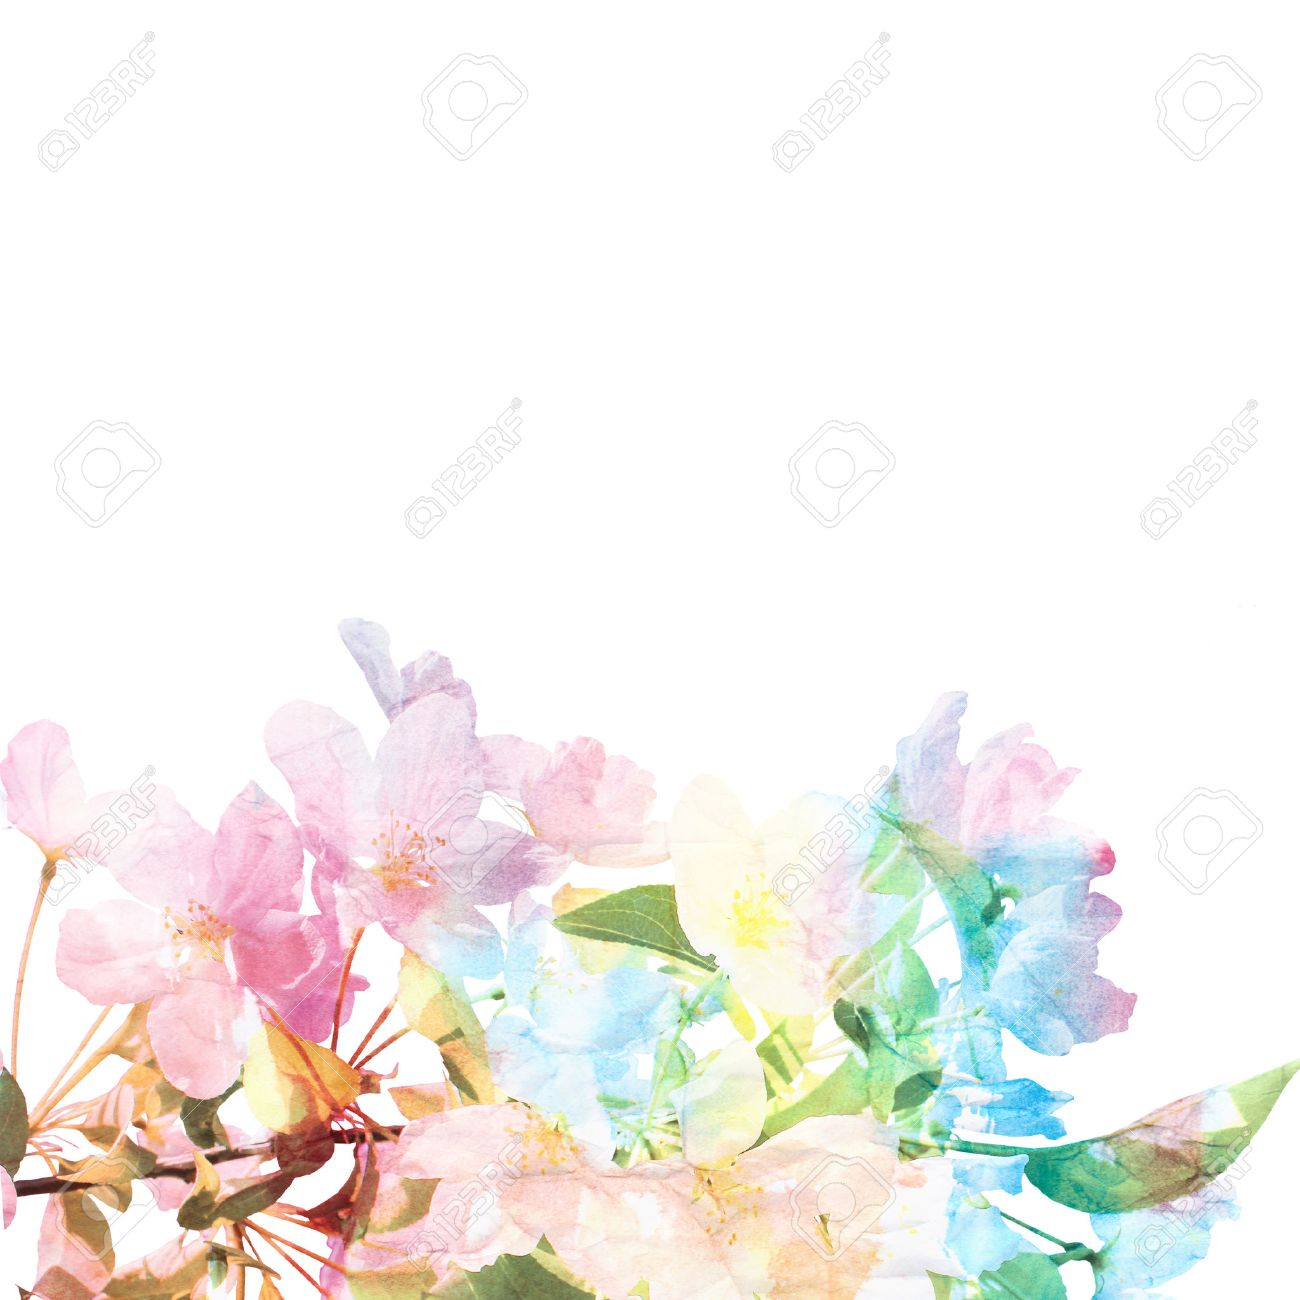 Floral Background Watercolor Floral Bouquet Card Stock Photo